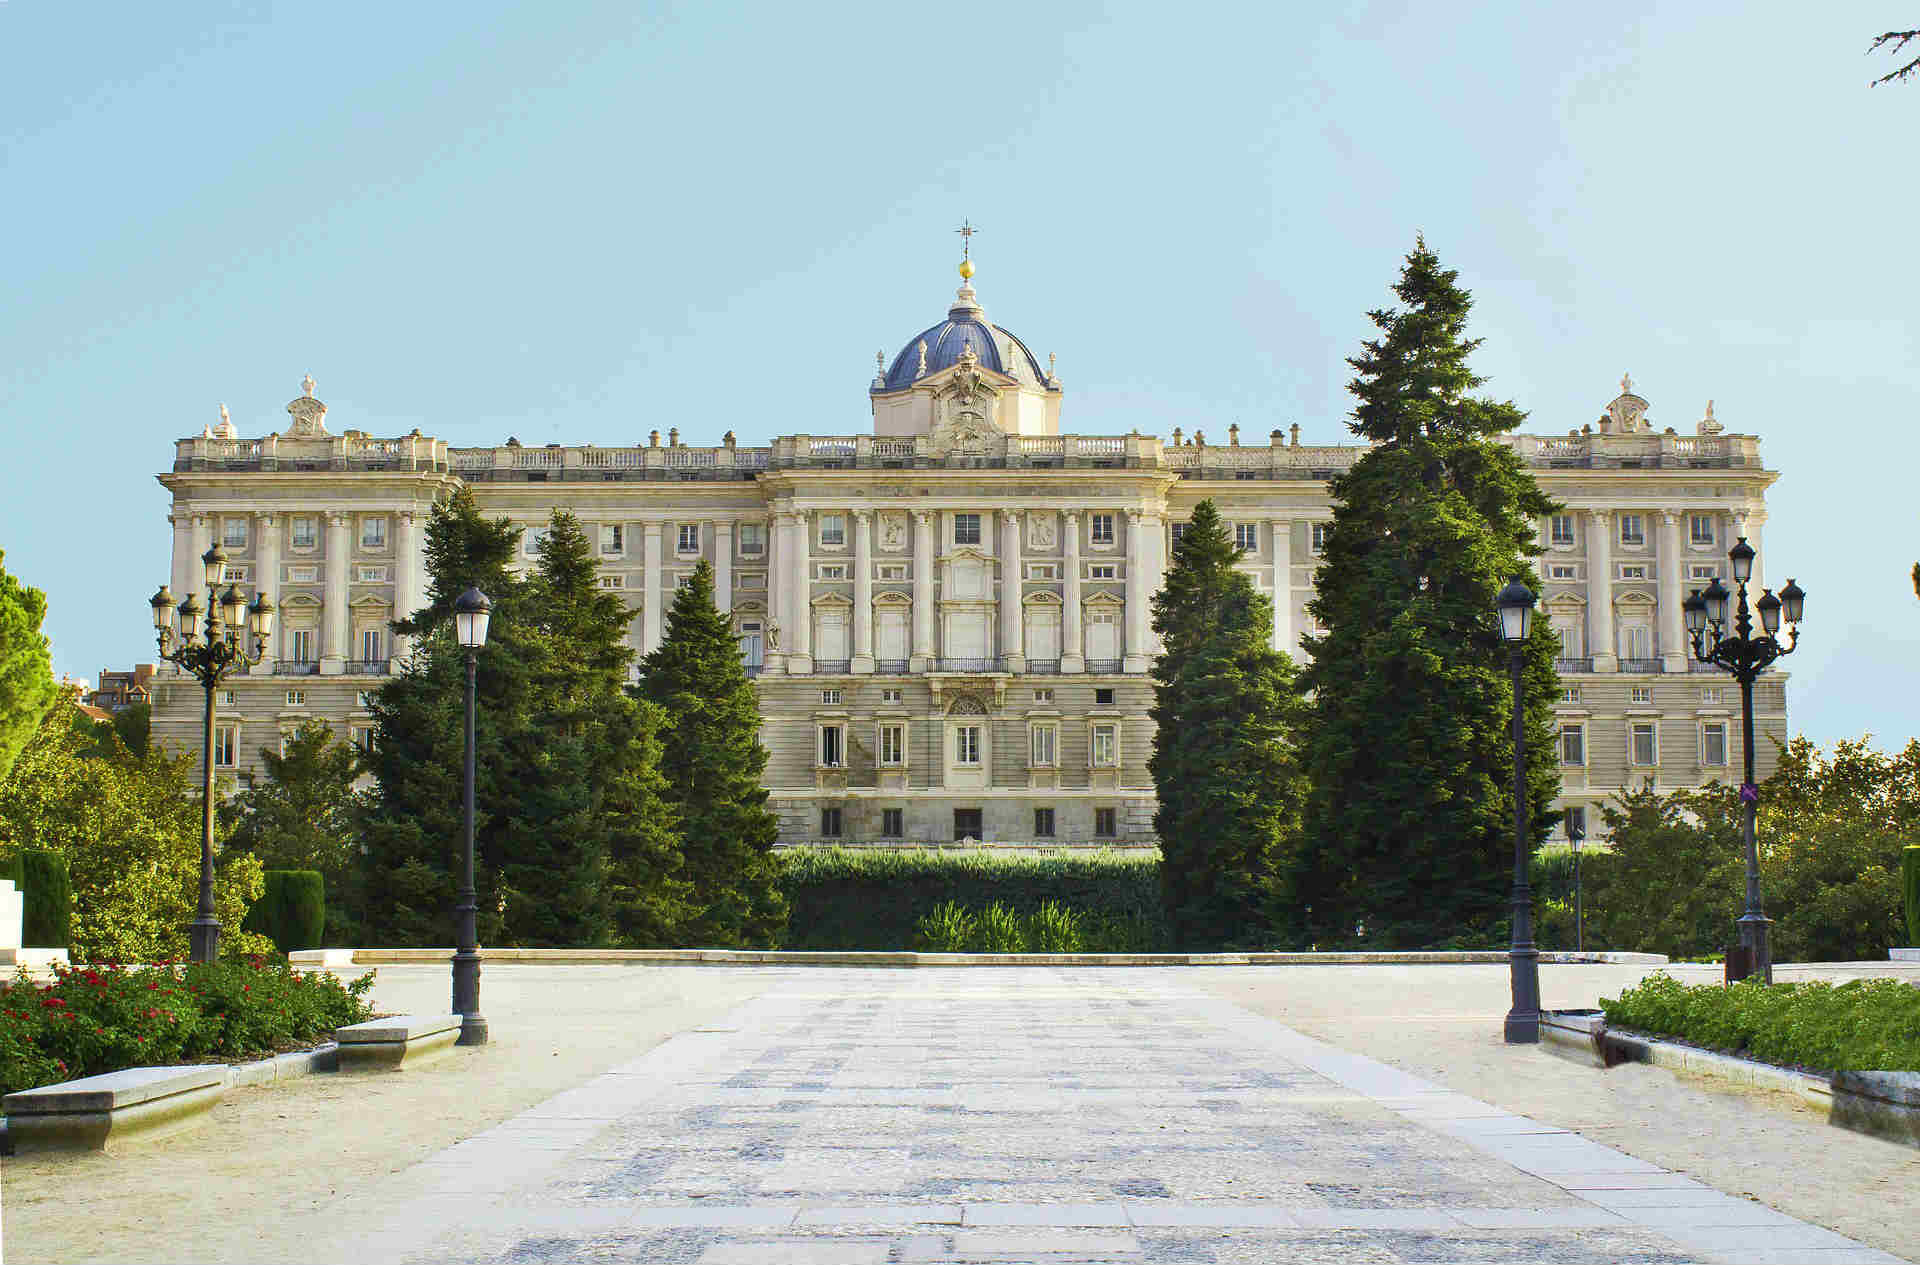 Explore The Royal Palace Of Madrid – Palacio Real